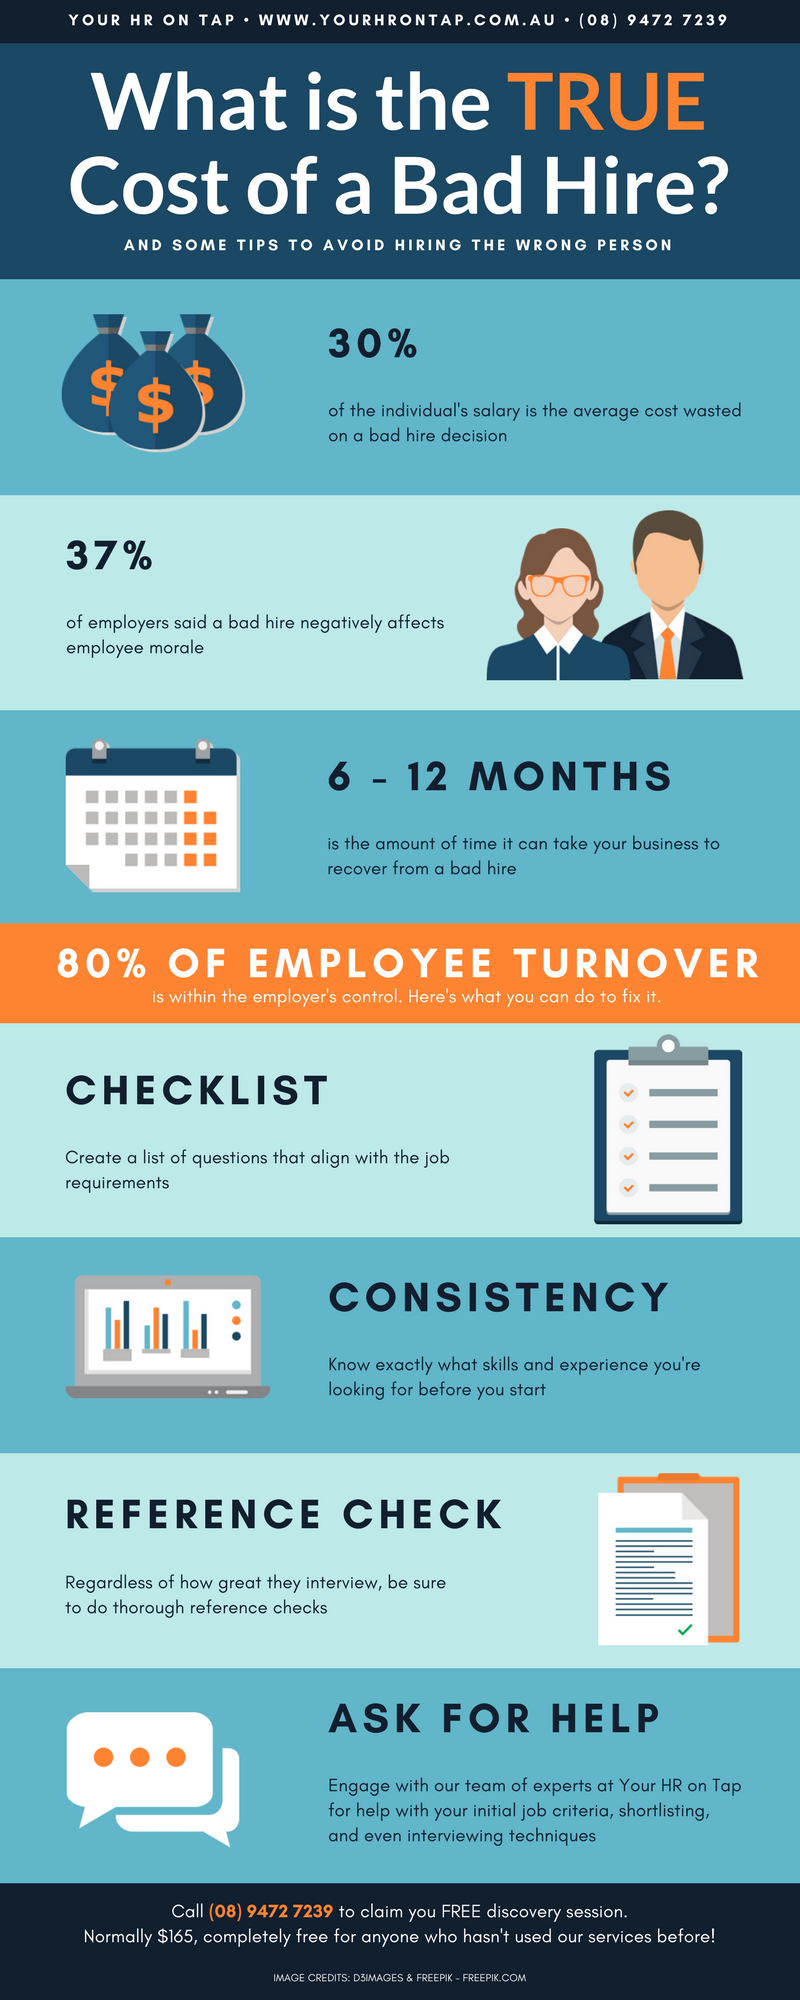 What is the TRUE cost of a bad hire - Infographic